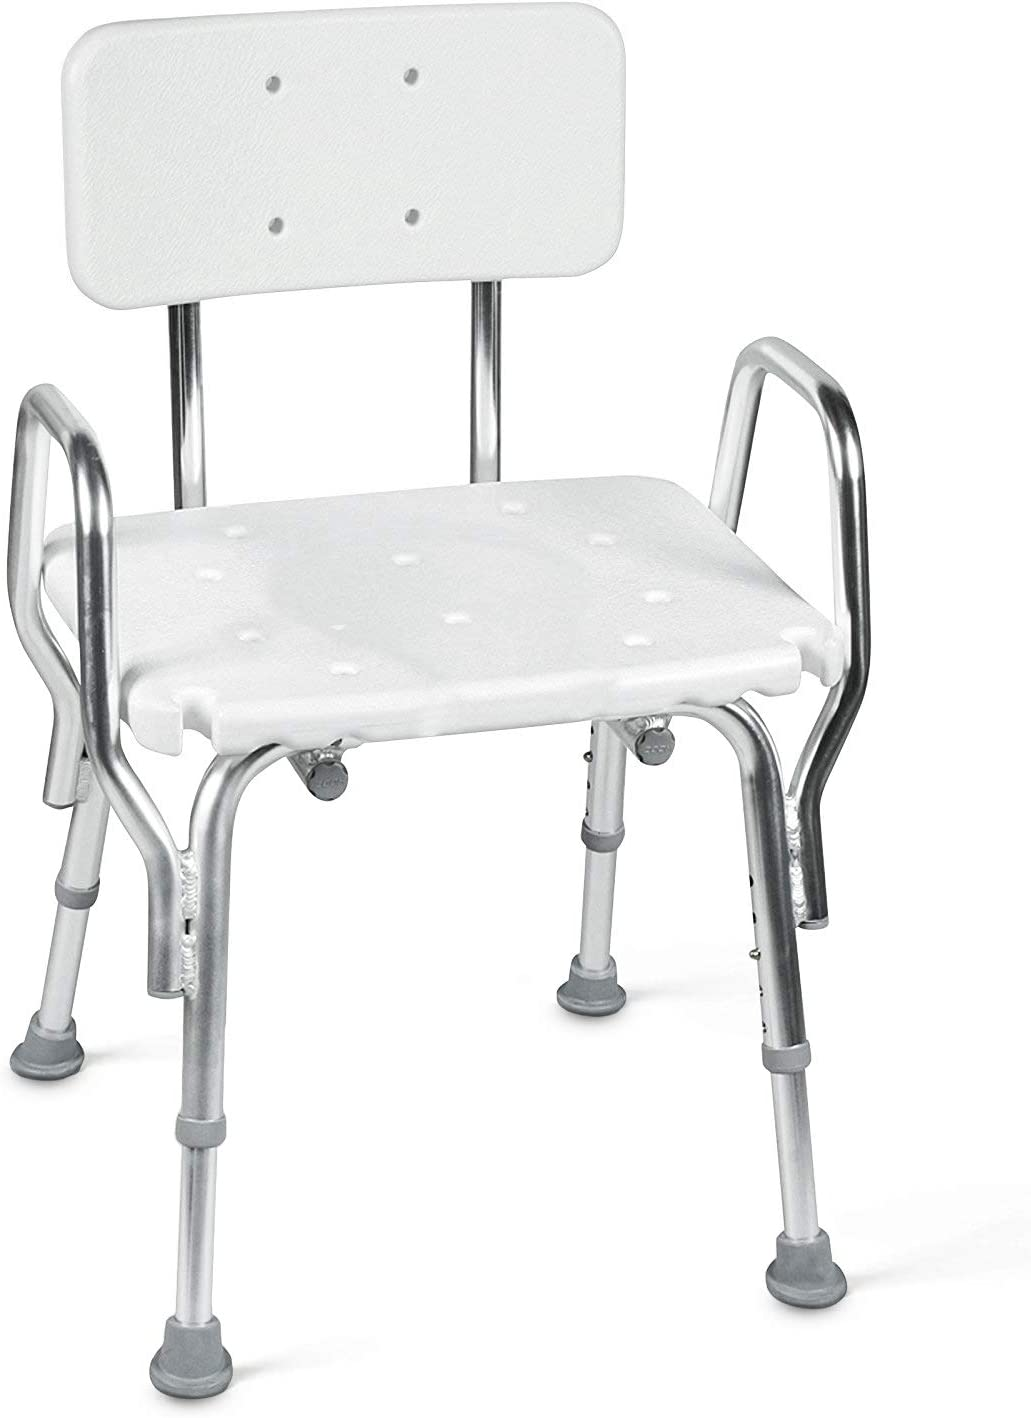 Tub and Shower Chair with Removable Back Rest